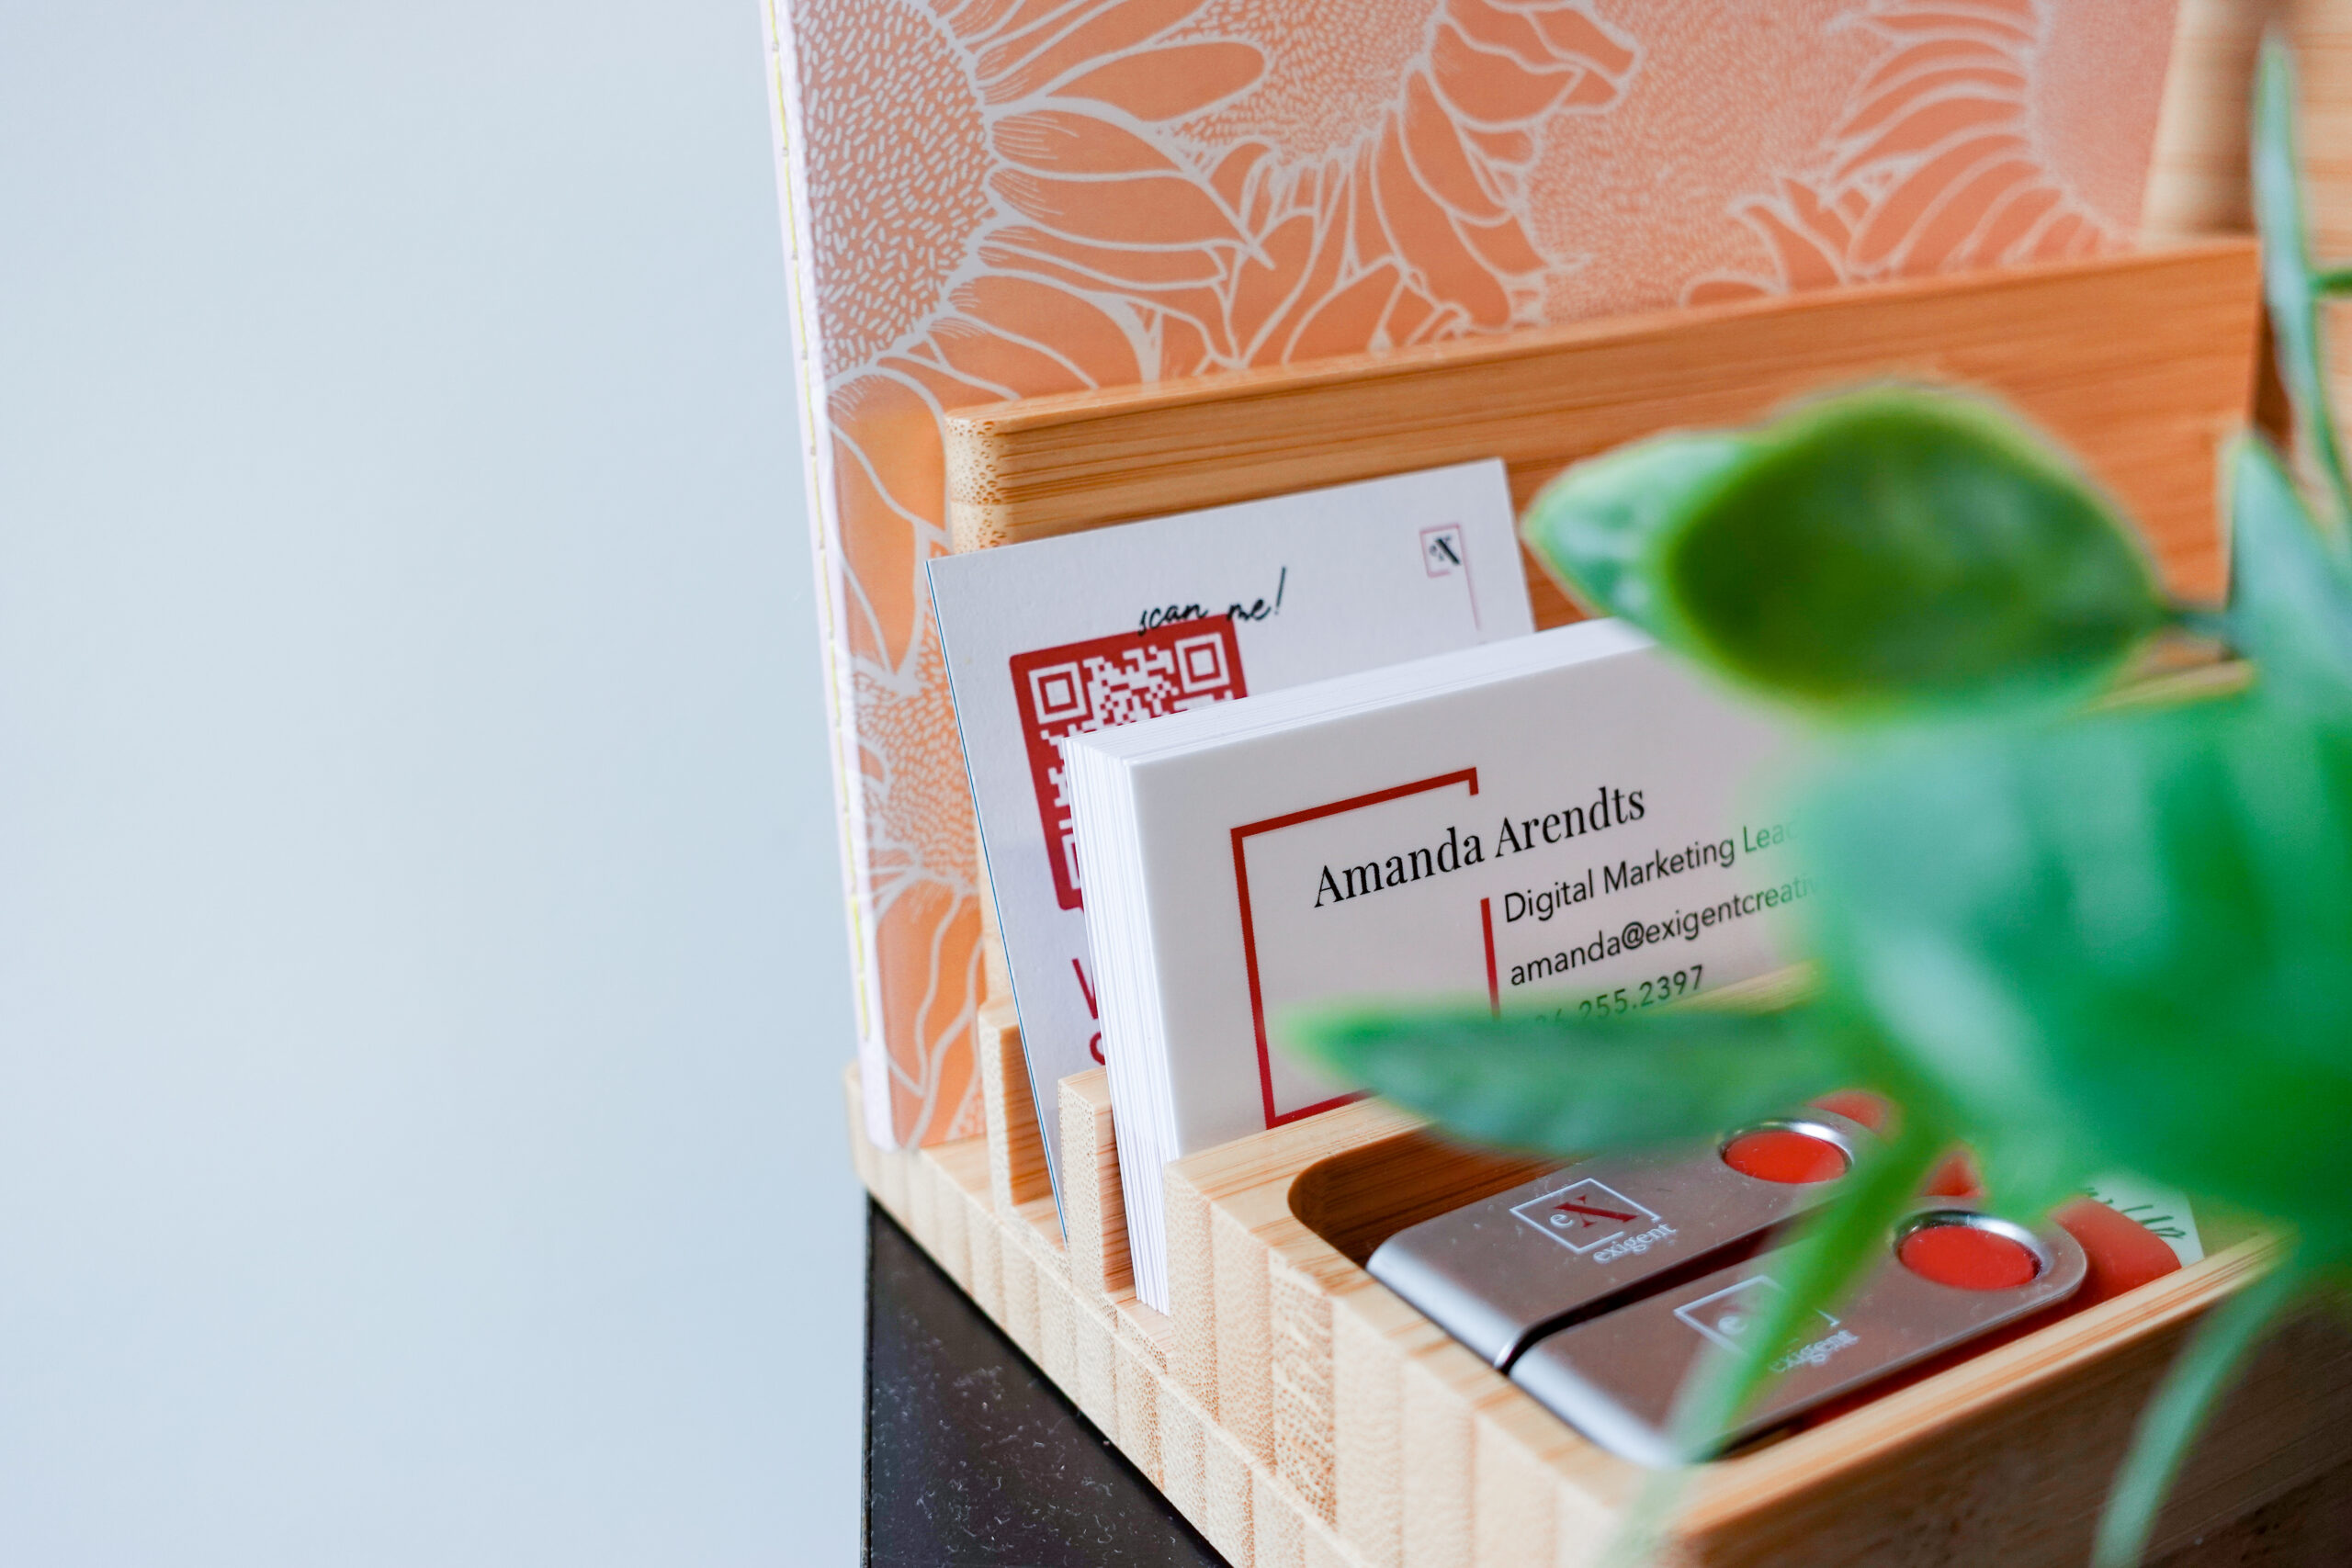 Alternative ways to share your business card